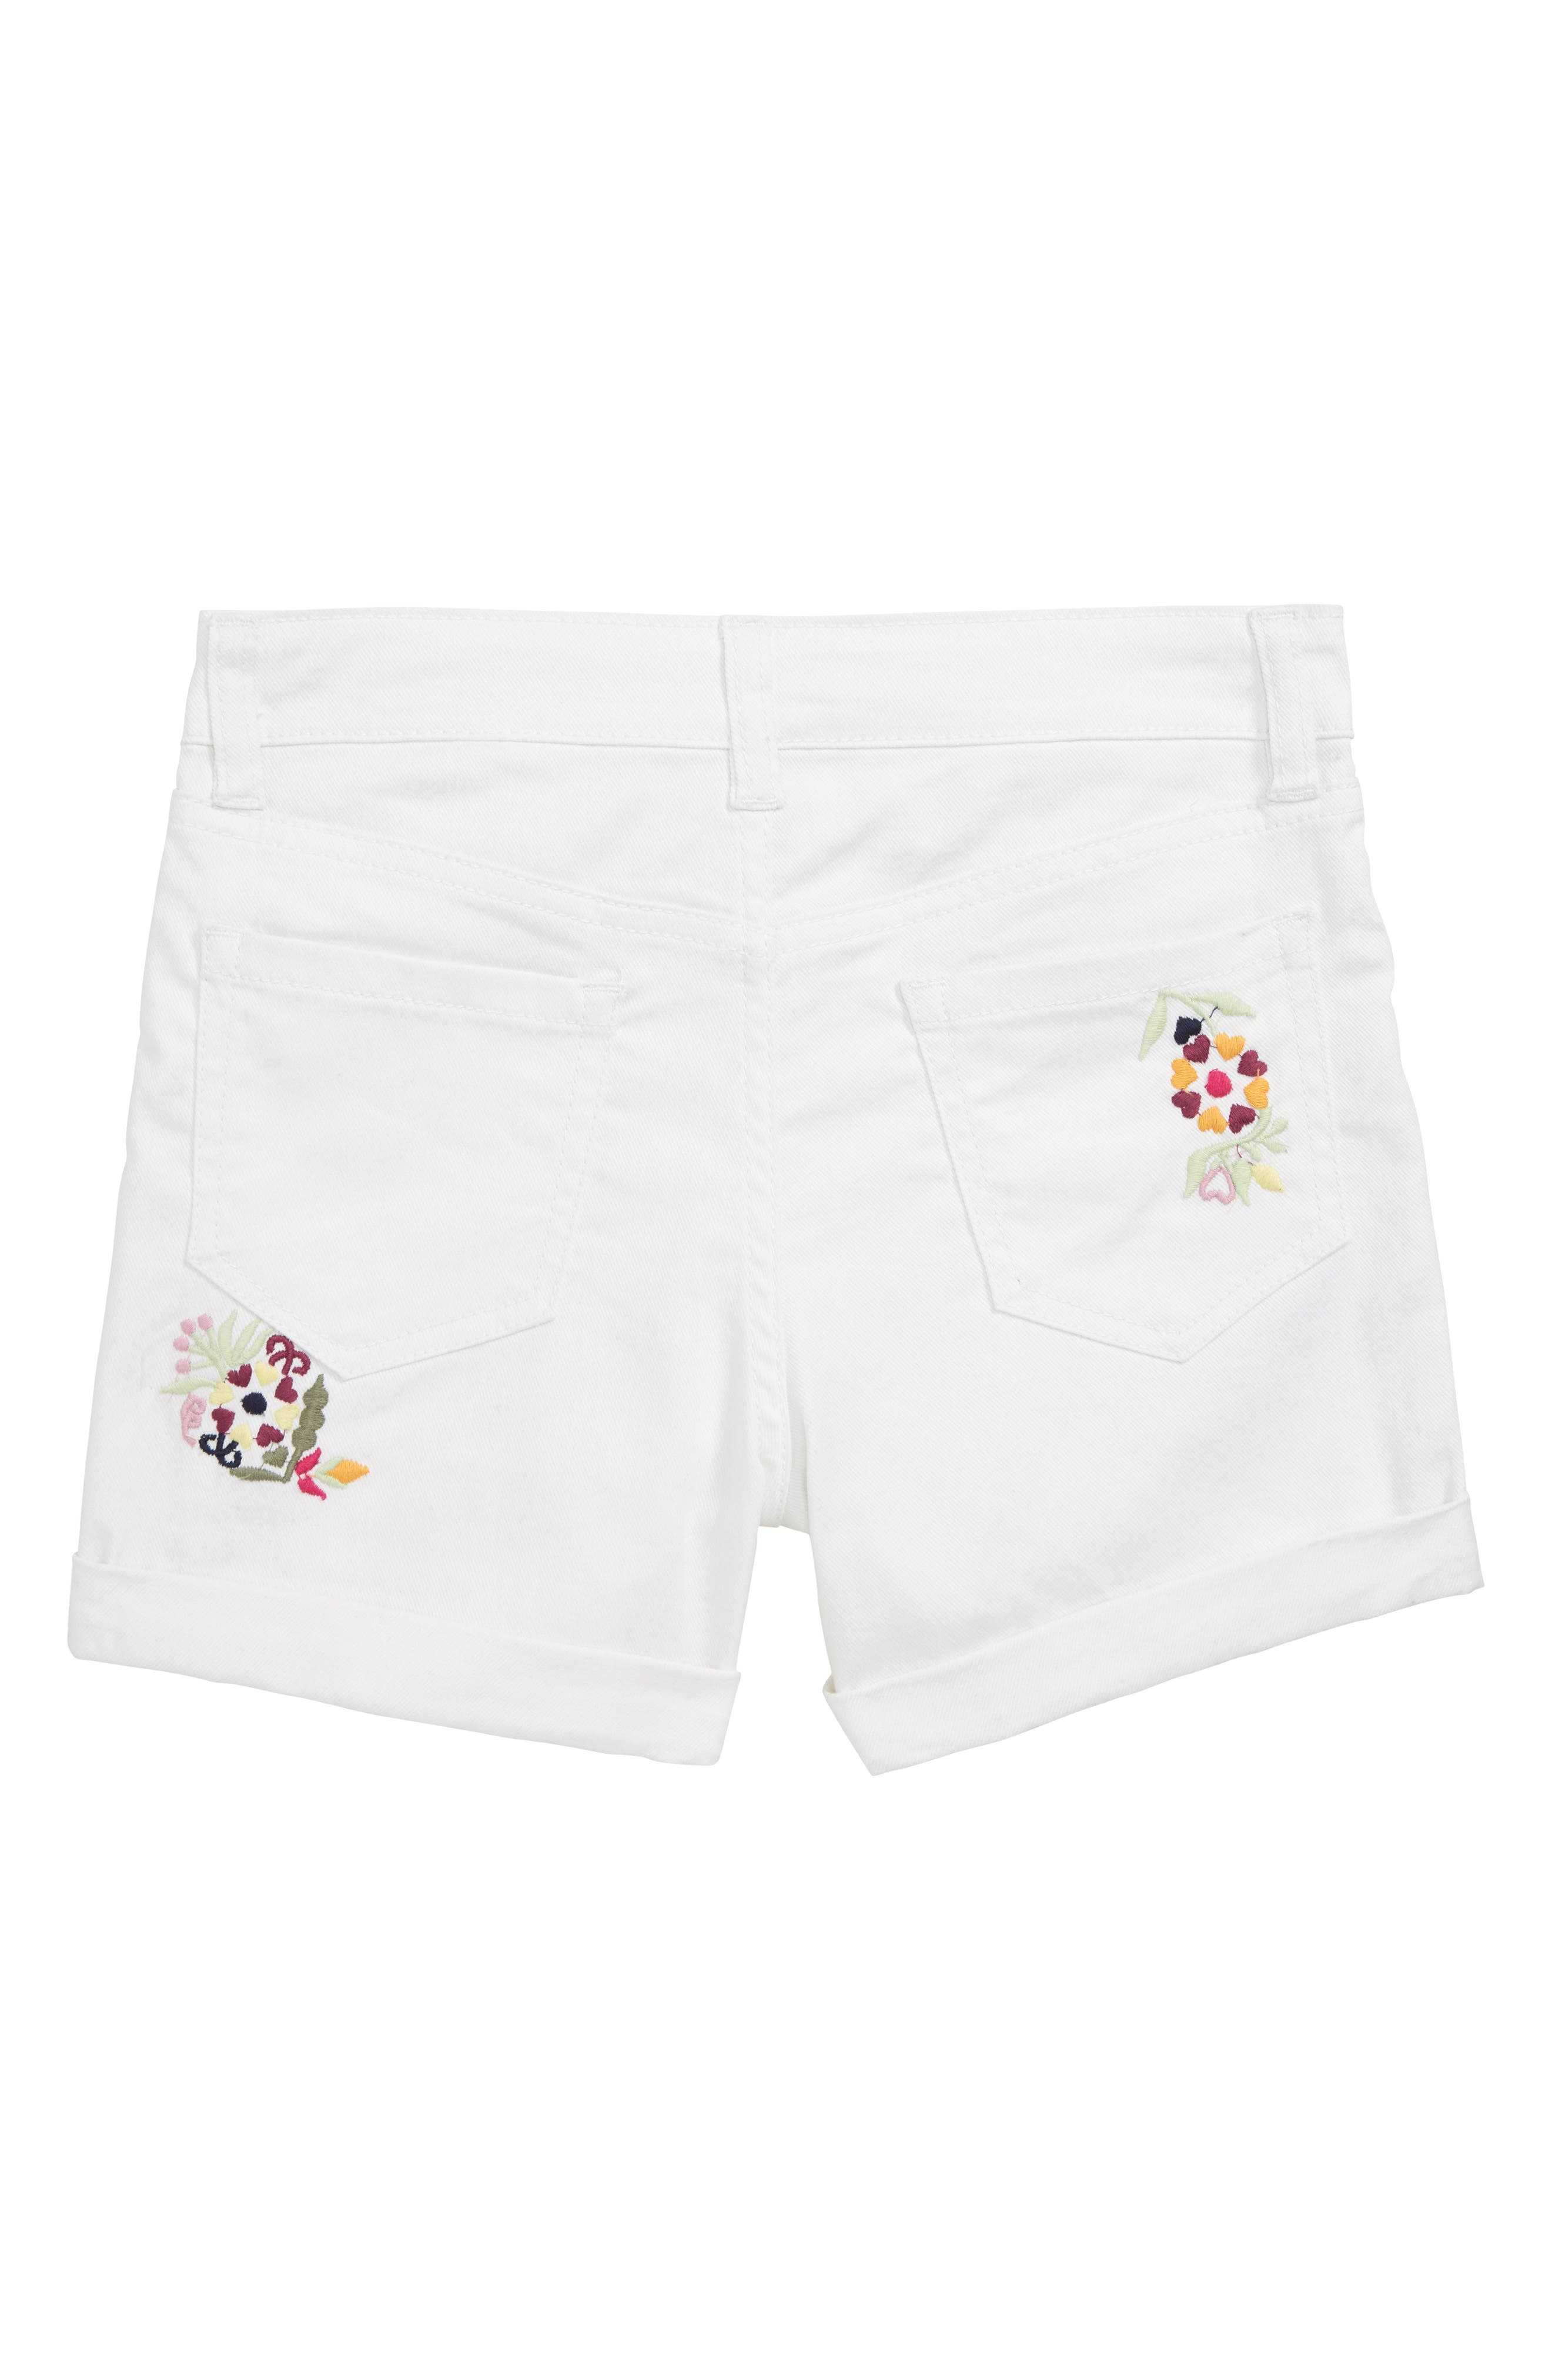 Griffin Embroidered Cuffed Denim Shorts,                             Alternate thumbnail 2, color,                             100